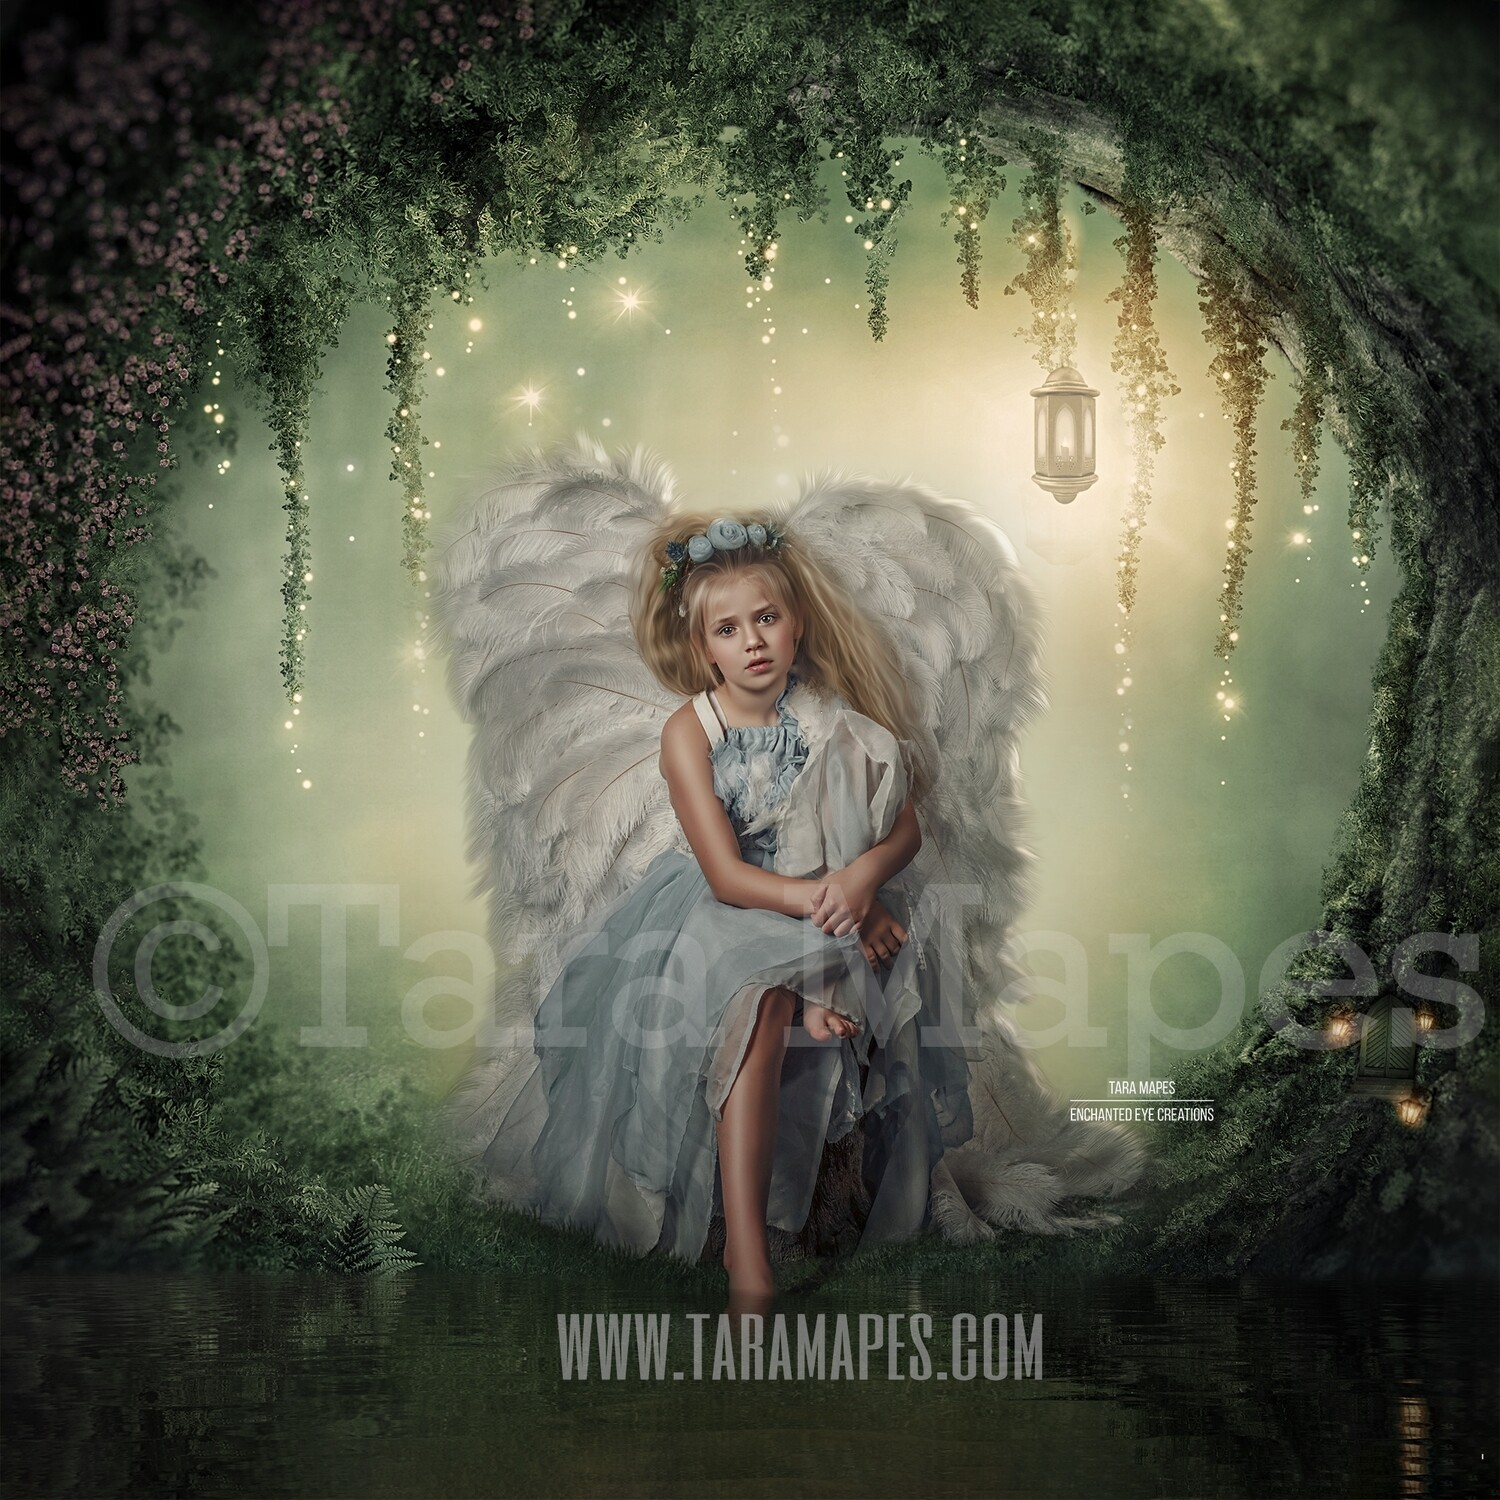 Enchanted Forest - Fairy Tree by Pond  Magical Fairy Photoshop Digital Background / Backdrop